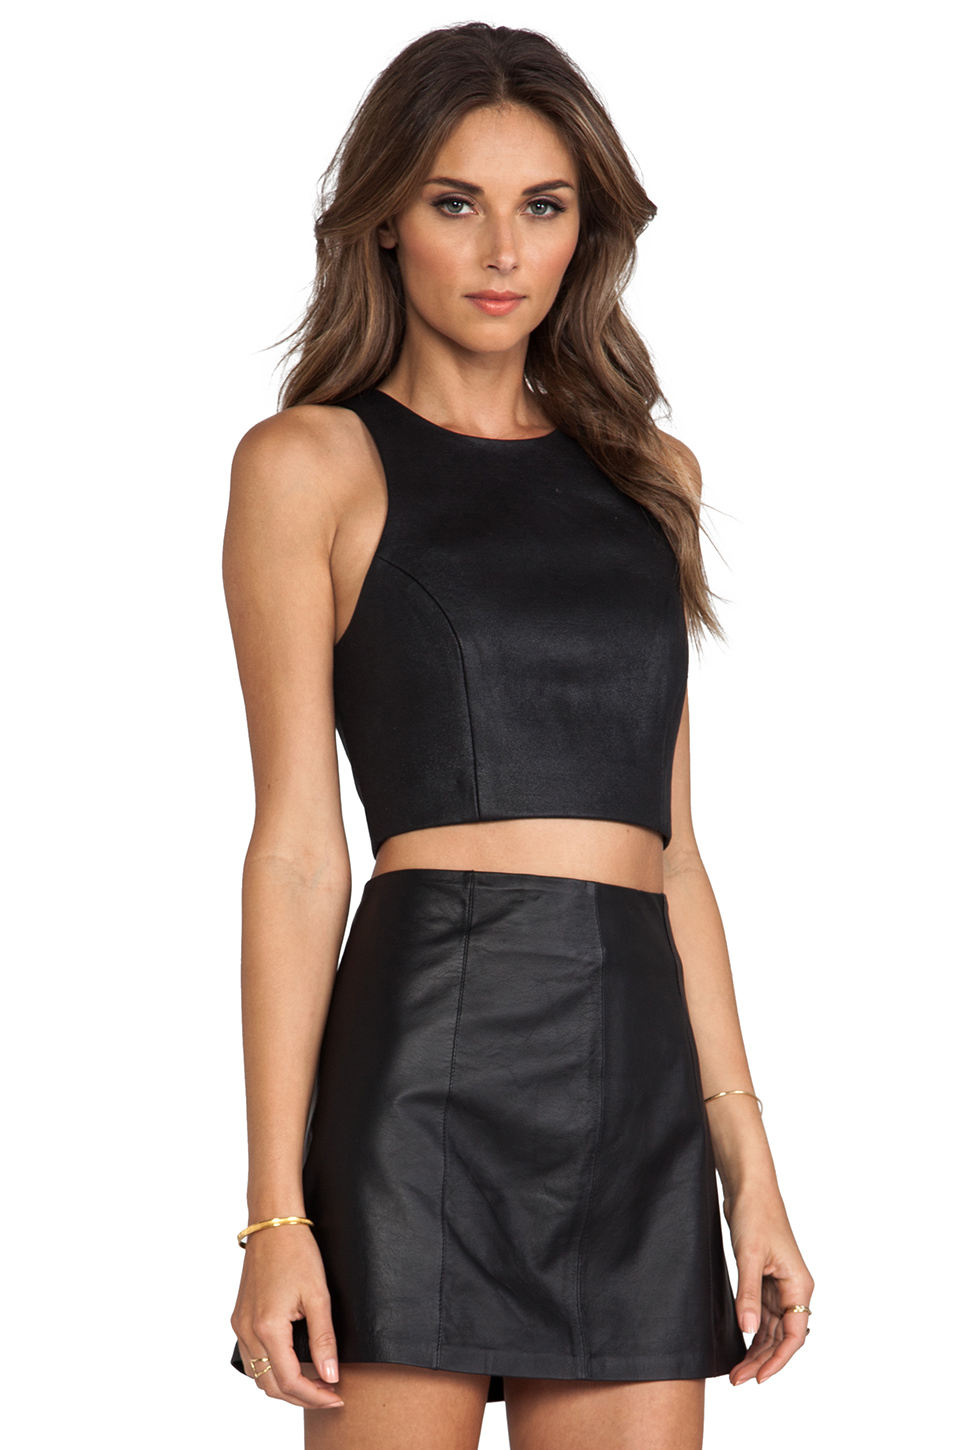 Cameo soul fire top in black from revolveclothing.com